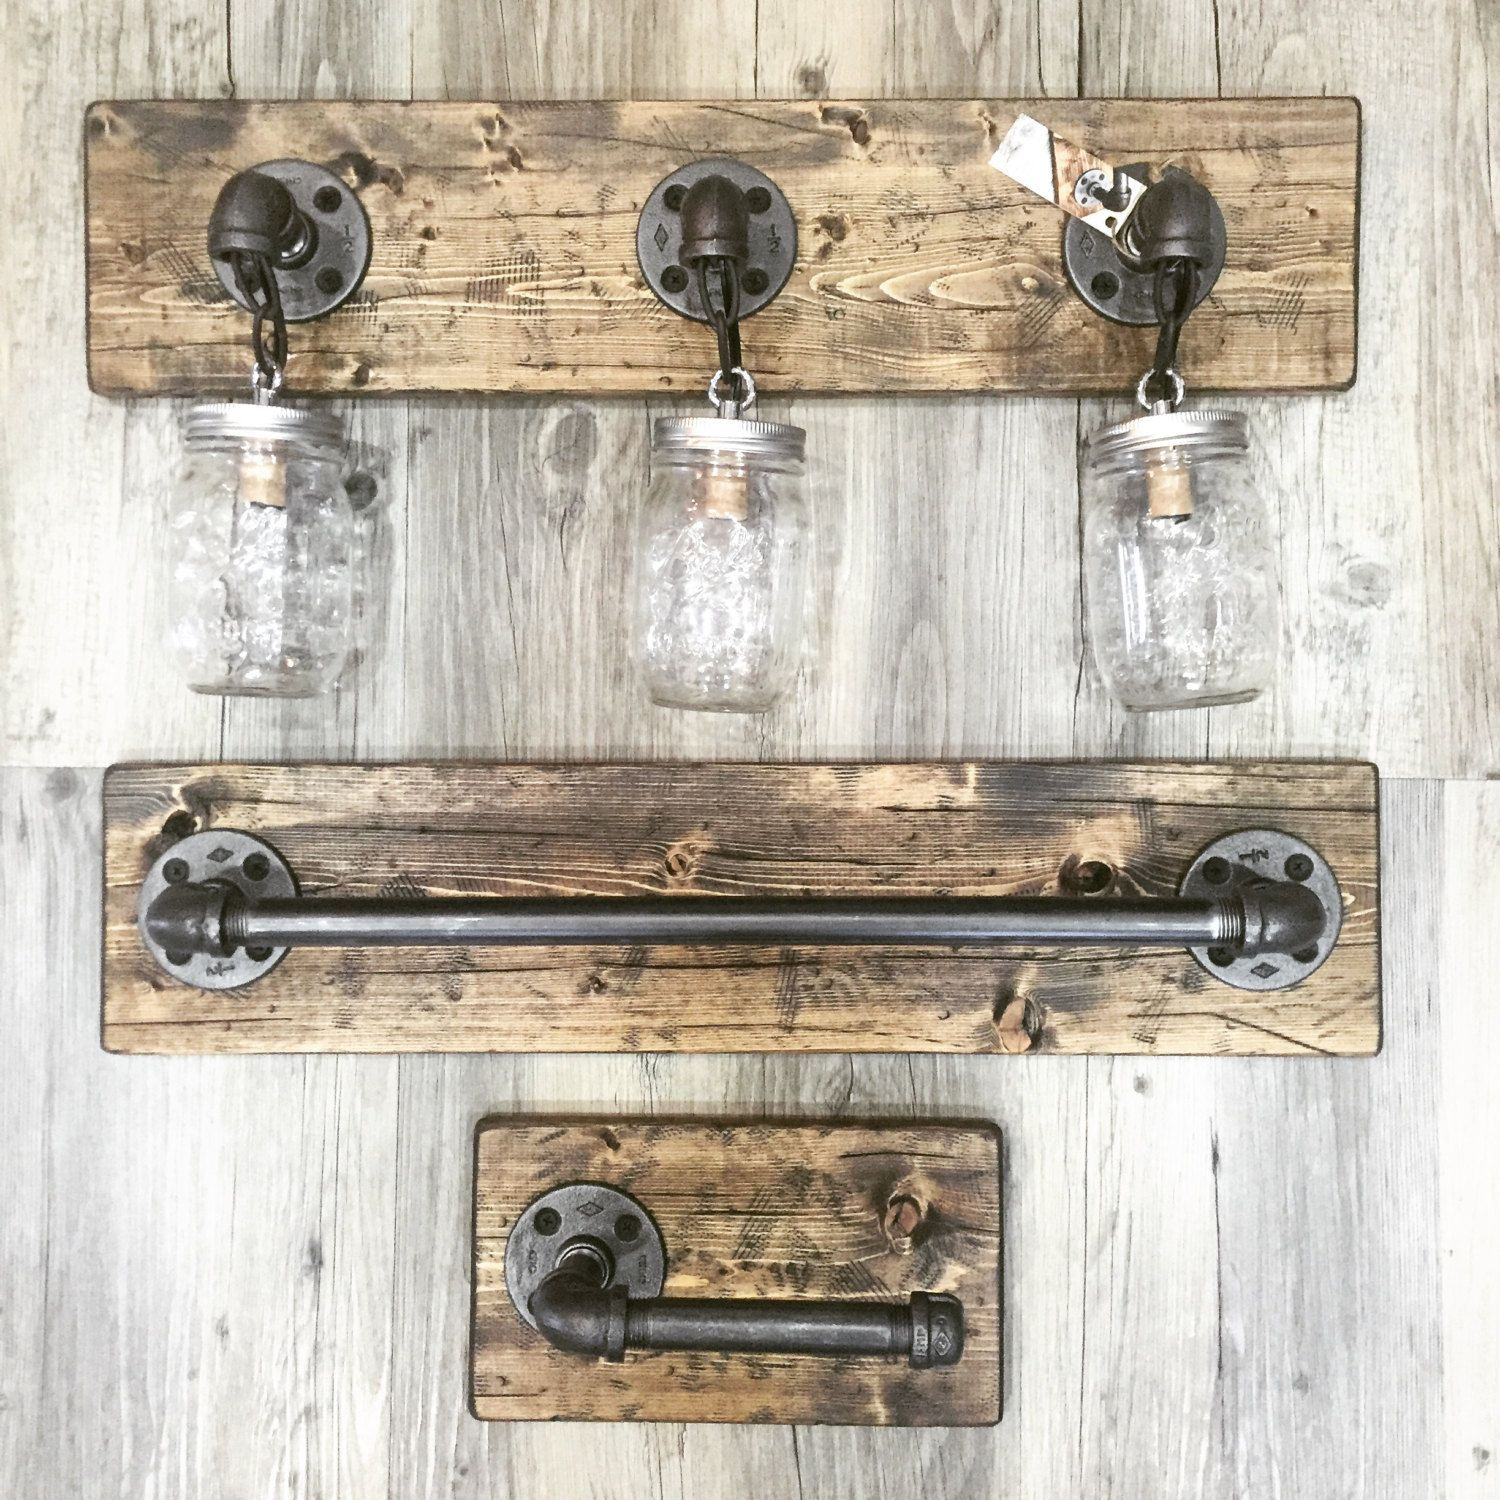 All In One This Industrial Rustic One Of A Kind Full Bathroom